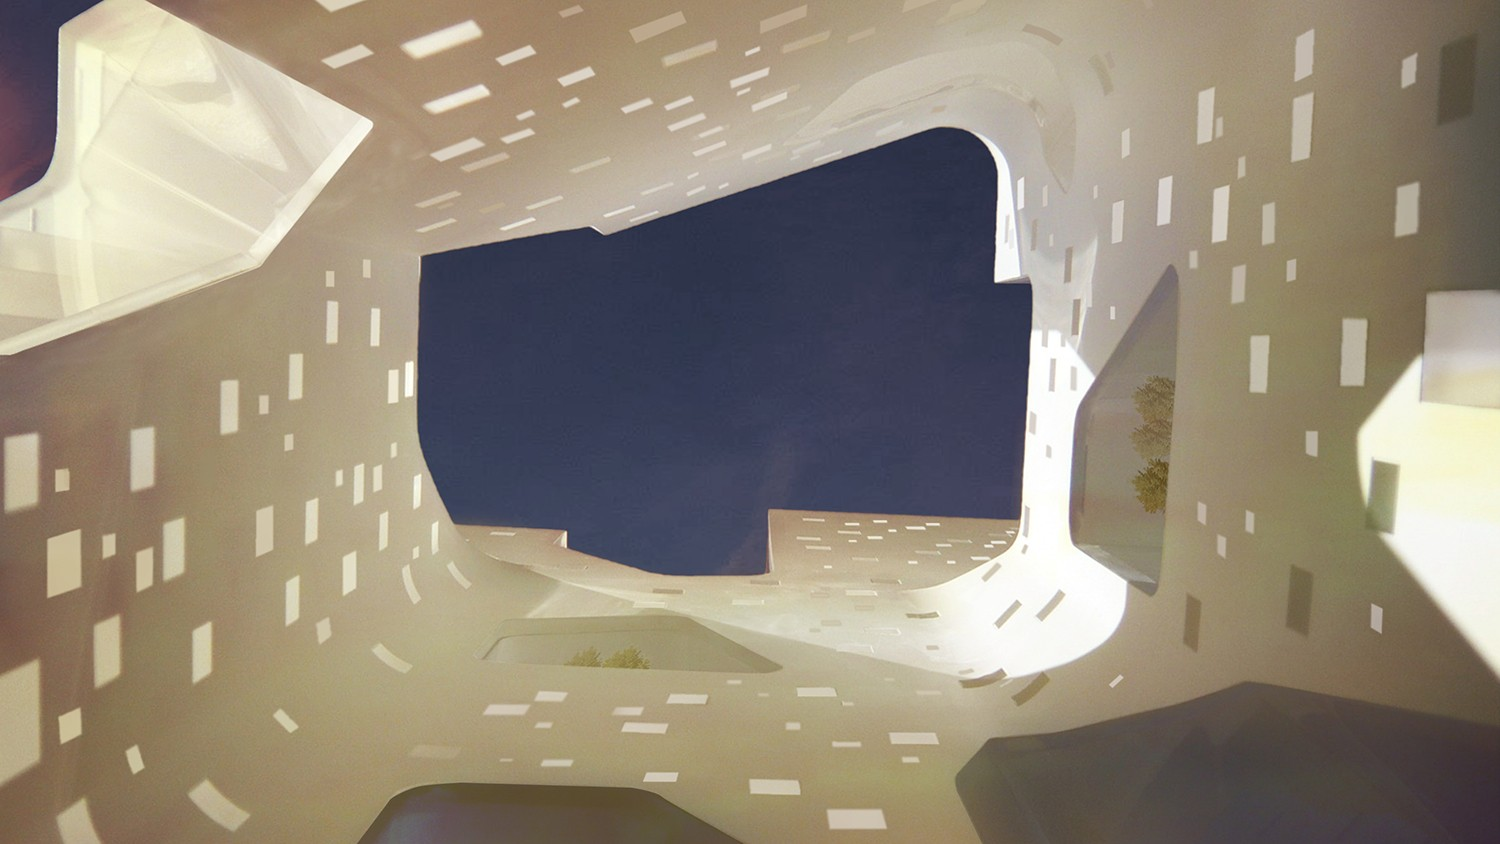 https://stevenholl.sfo2.digitaloceanspaces.com/uploads/projects/project-images/StevenHollArchitects_LiZe_2013-12-03-courtyardsunset_WH.jpg